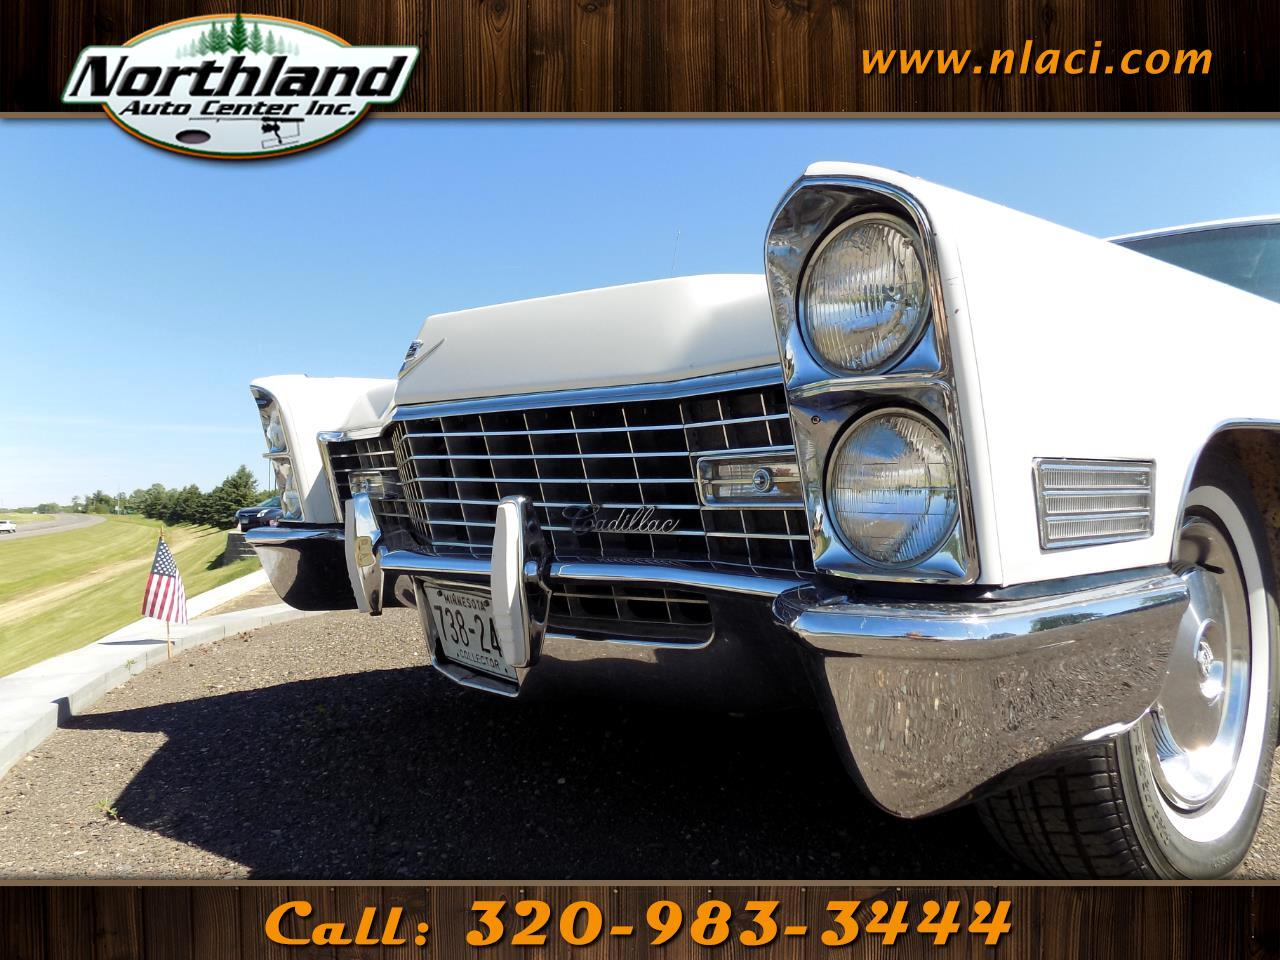 1967 Cadillac Calais Option Packed! A/C, PW, PS, Cruise